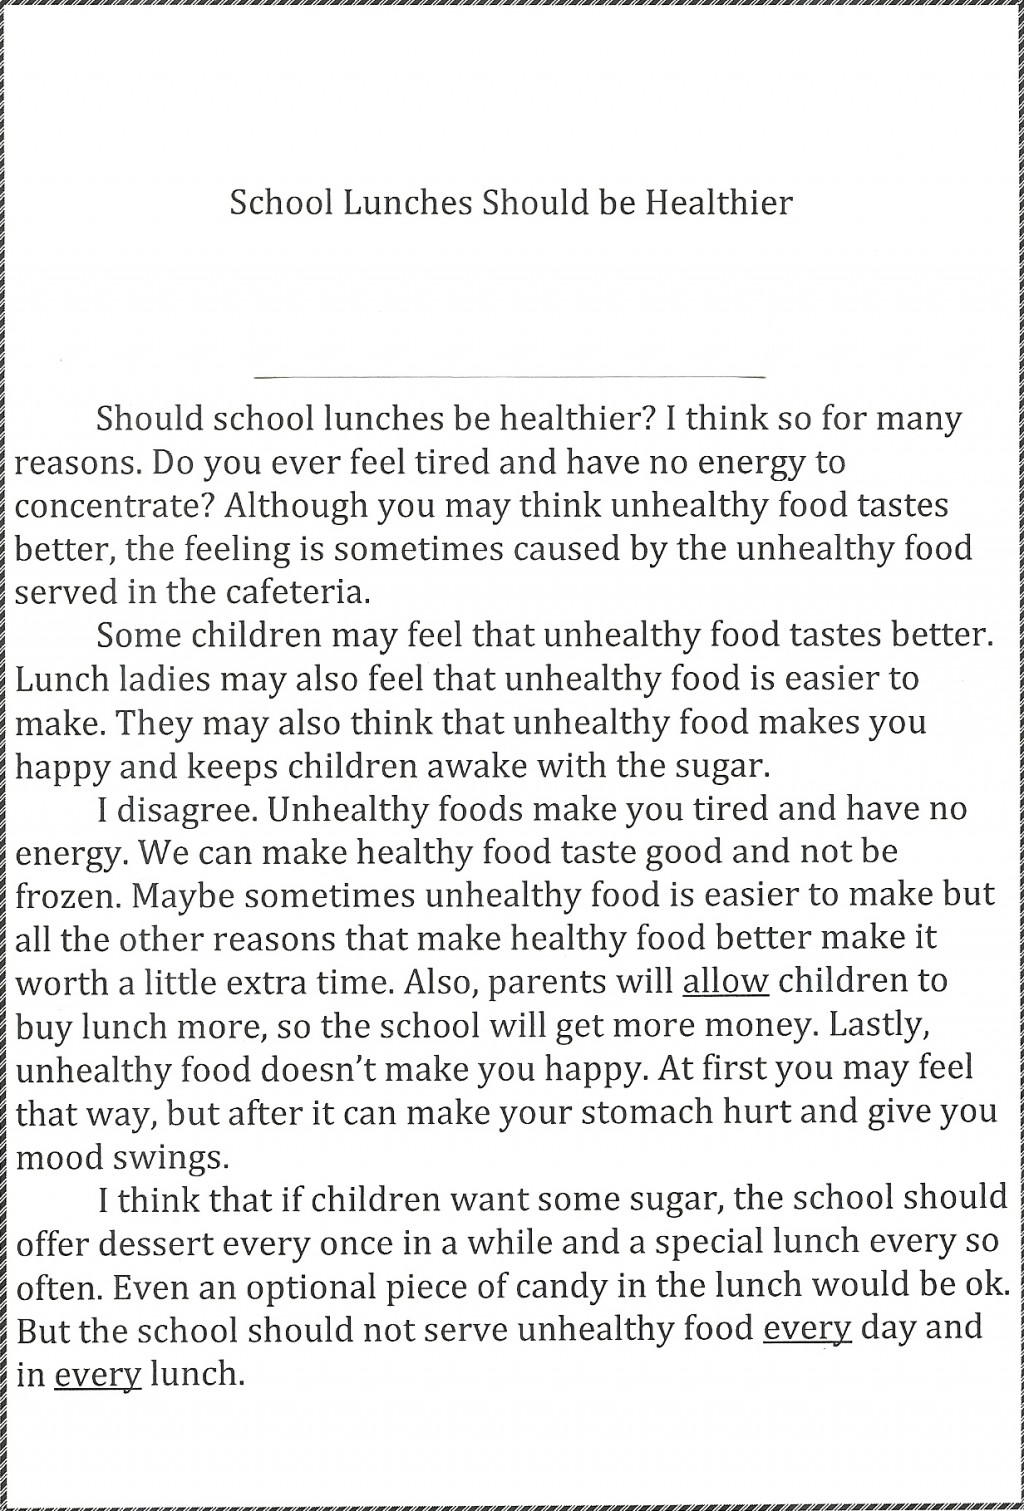 012 Persuasive Essayss Thoughtsonschoollunches Essay Stupendous Essays Examples For 5th Grade 11 High School Pdf Large